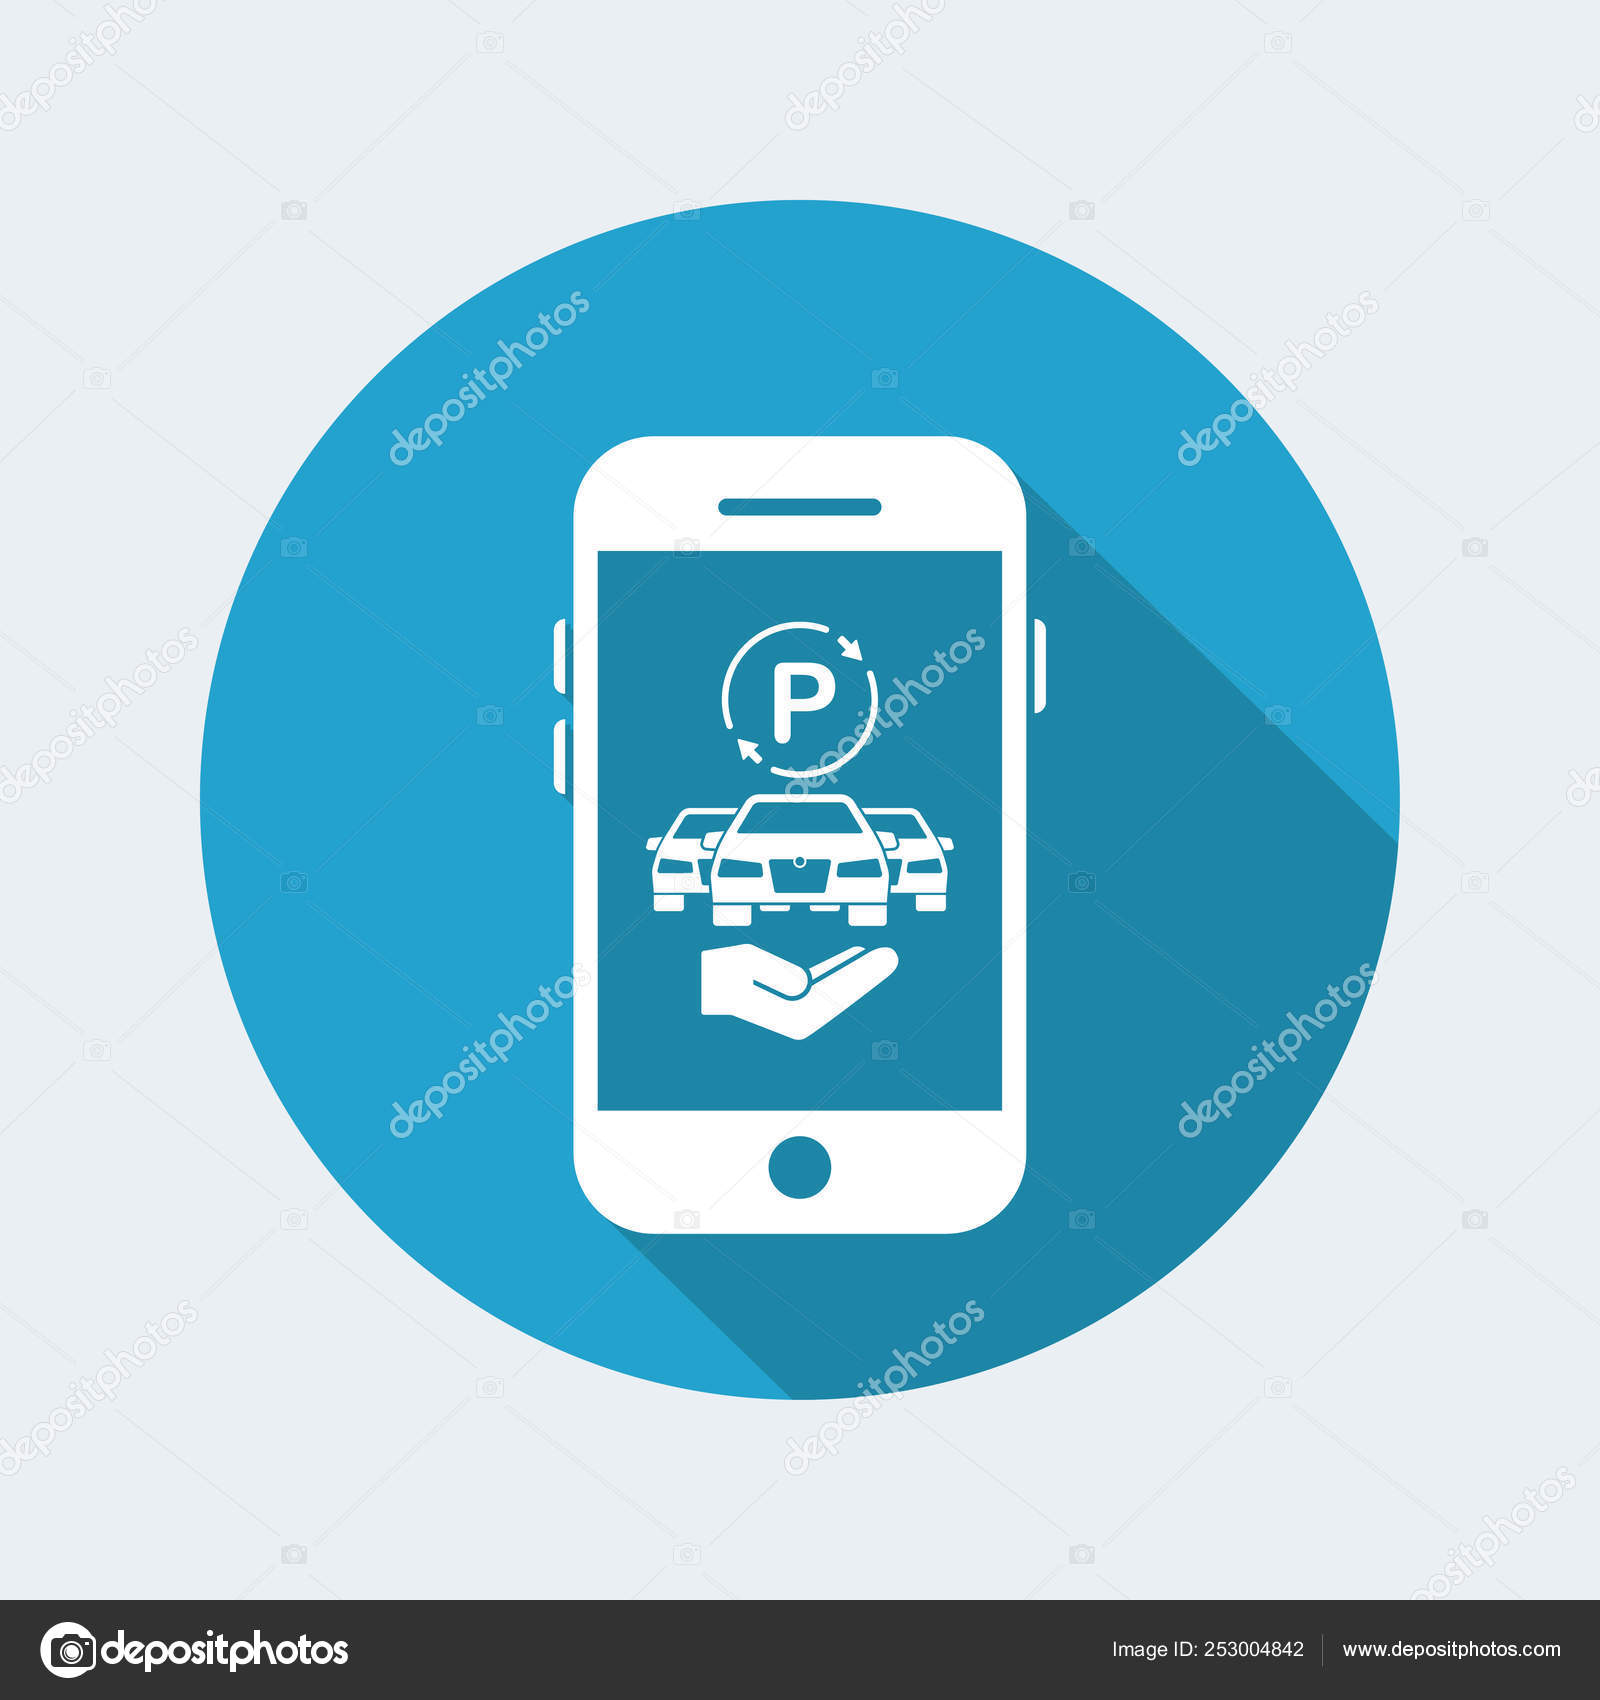 Application For Car Parking Stock Vector C Myvector 253004842